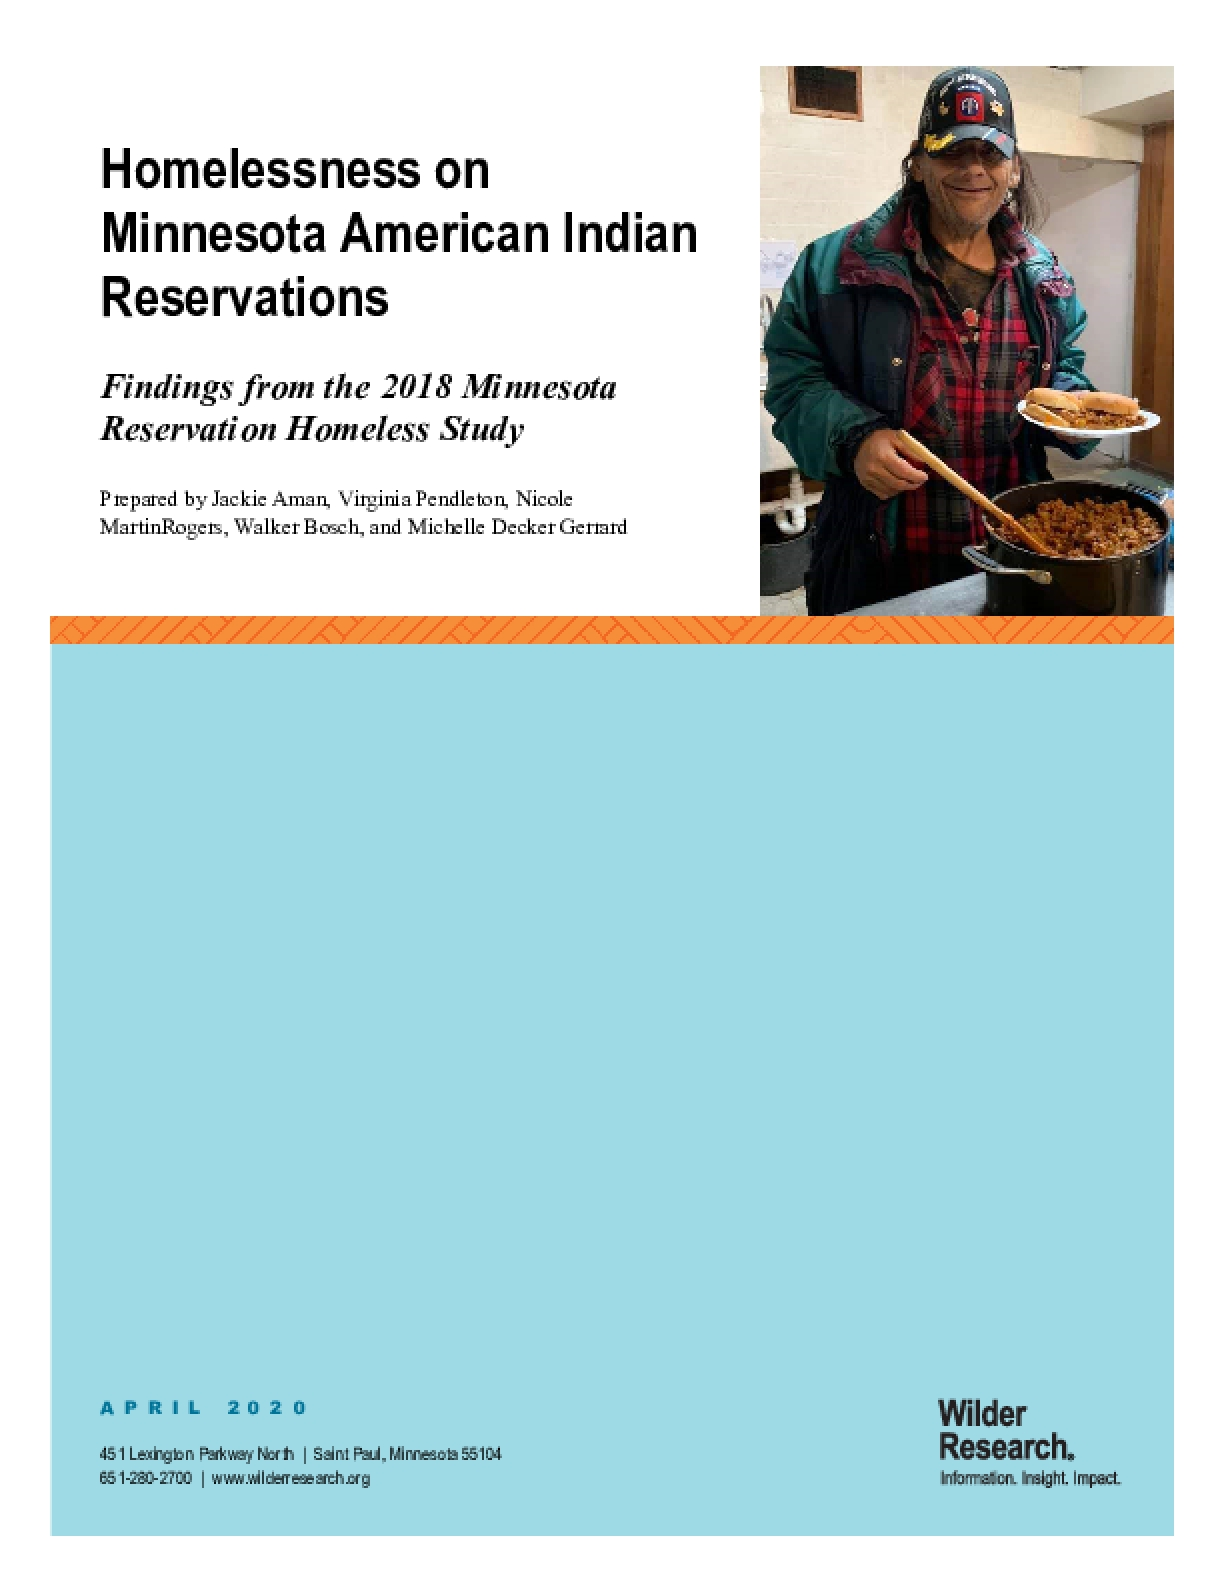 Homelessness on Minnesota American Indian Reservations: Findings from the 2018 Minnesota Reservation Homeless Study